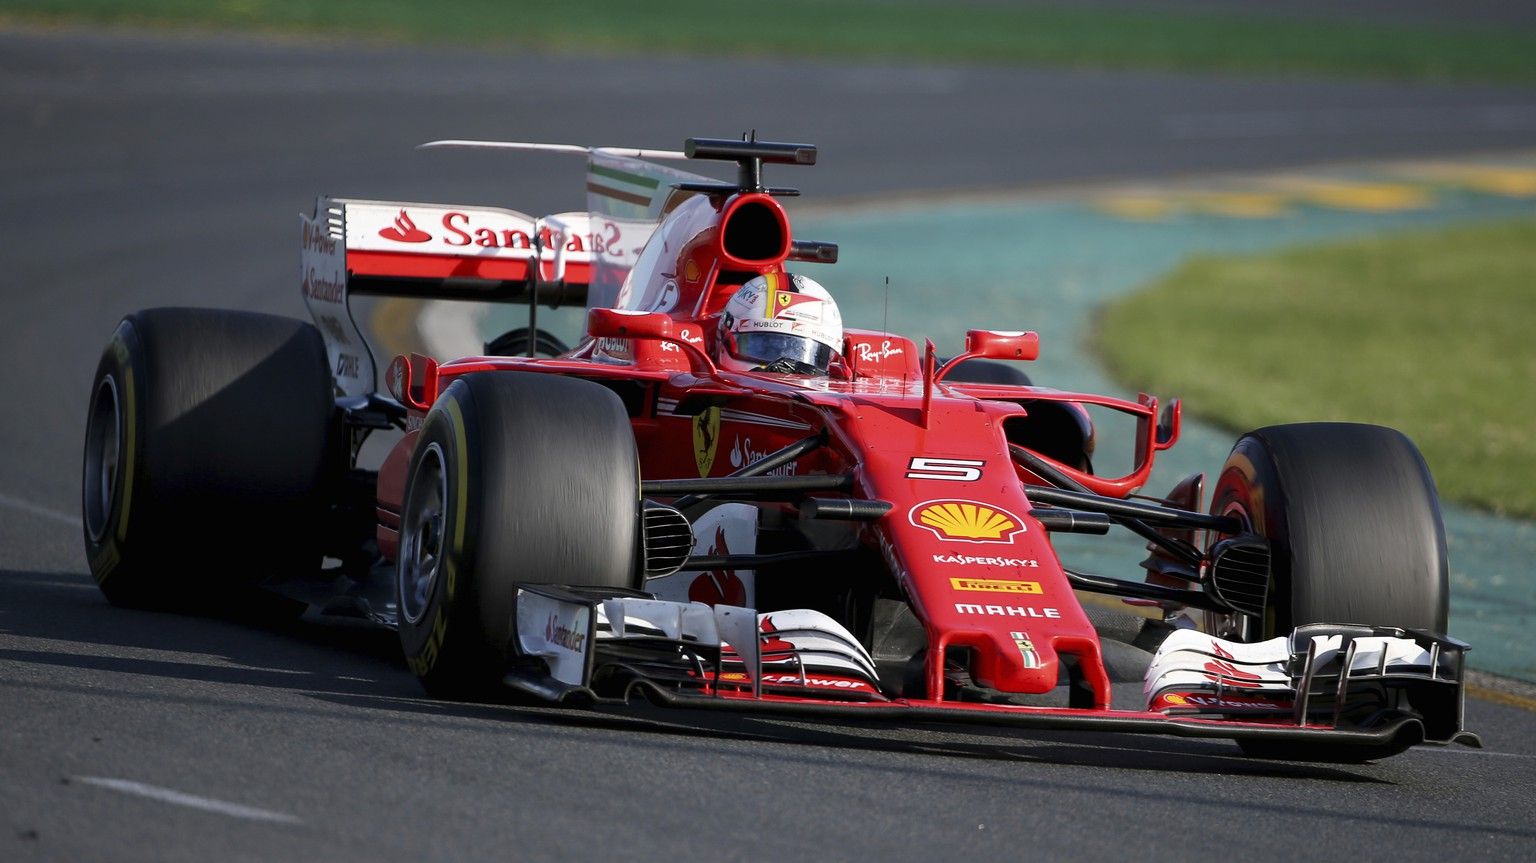 formel 1 gp australien 2017 vettel gewinnt vor den mercedes watson. Black Bedroom Furniture Sets. Home Design Ideas